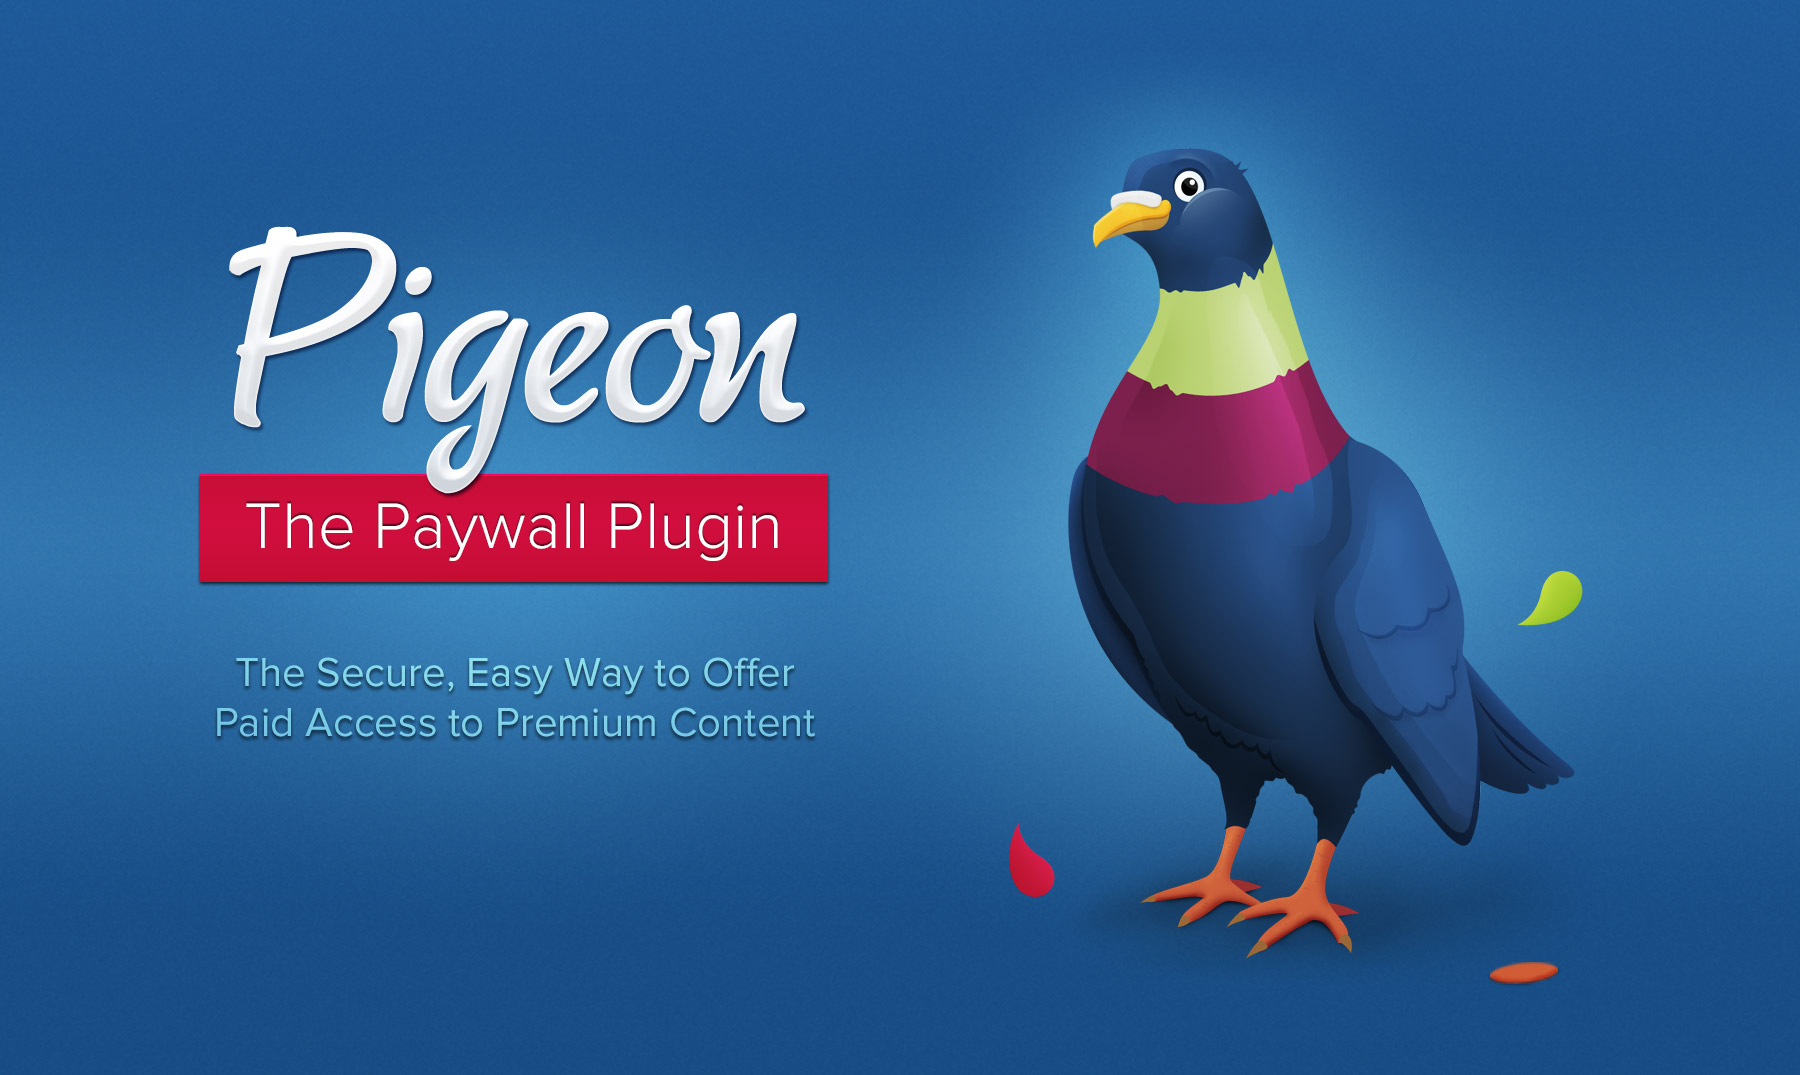 Pigeon Paywall Plugin for Paid Content and Subscription Management